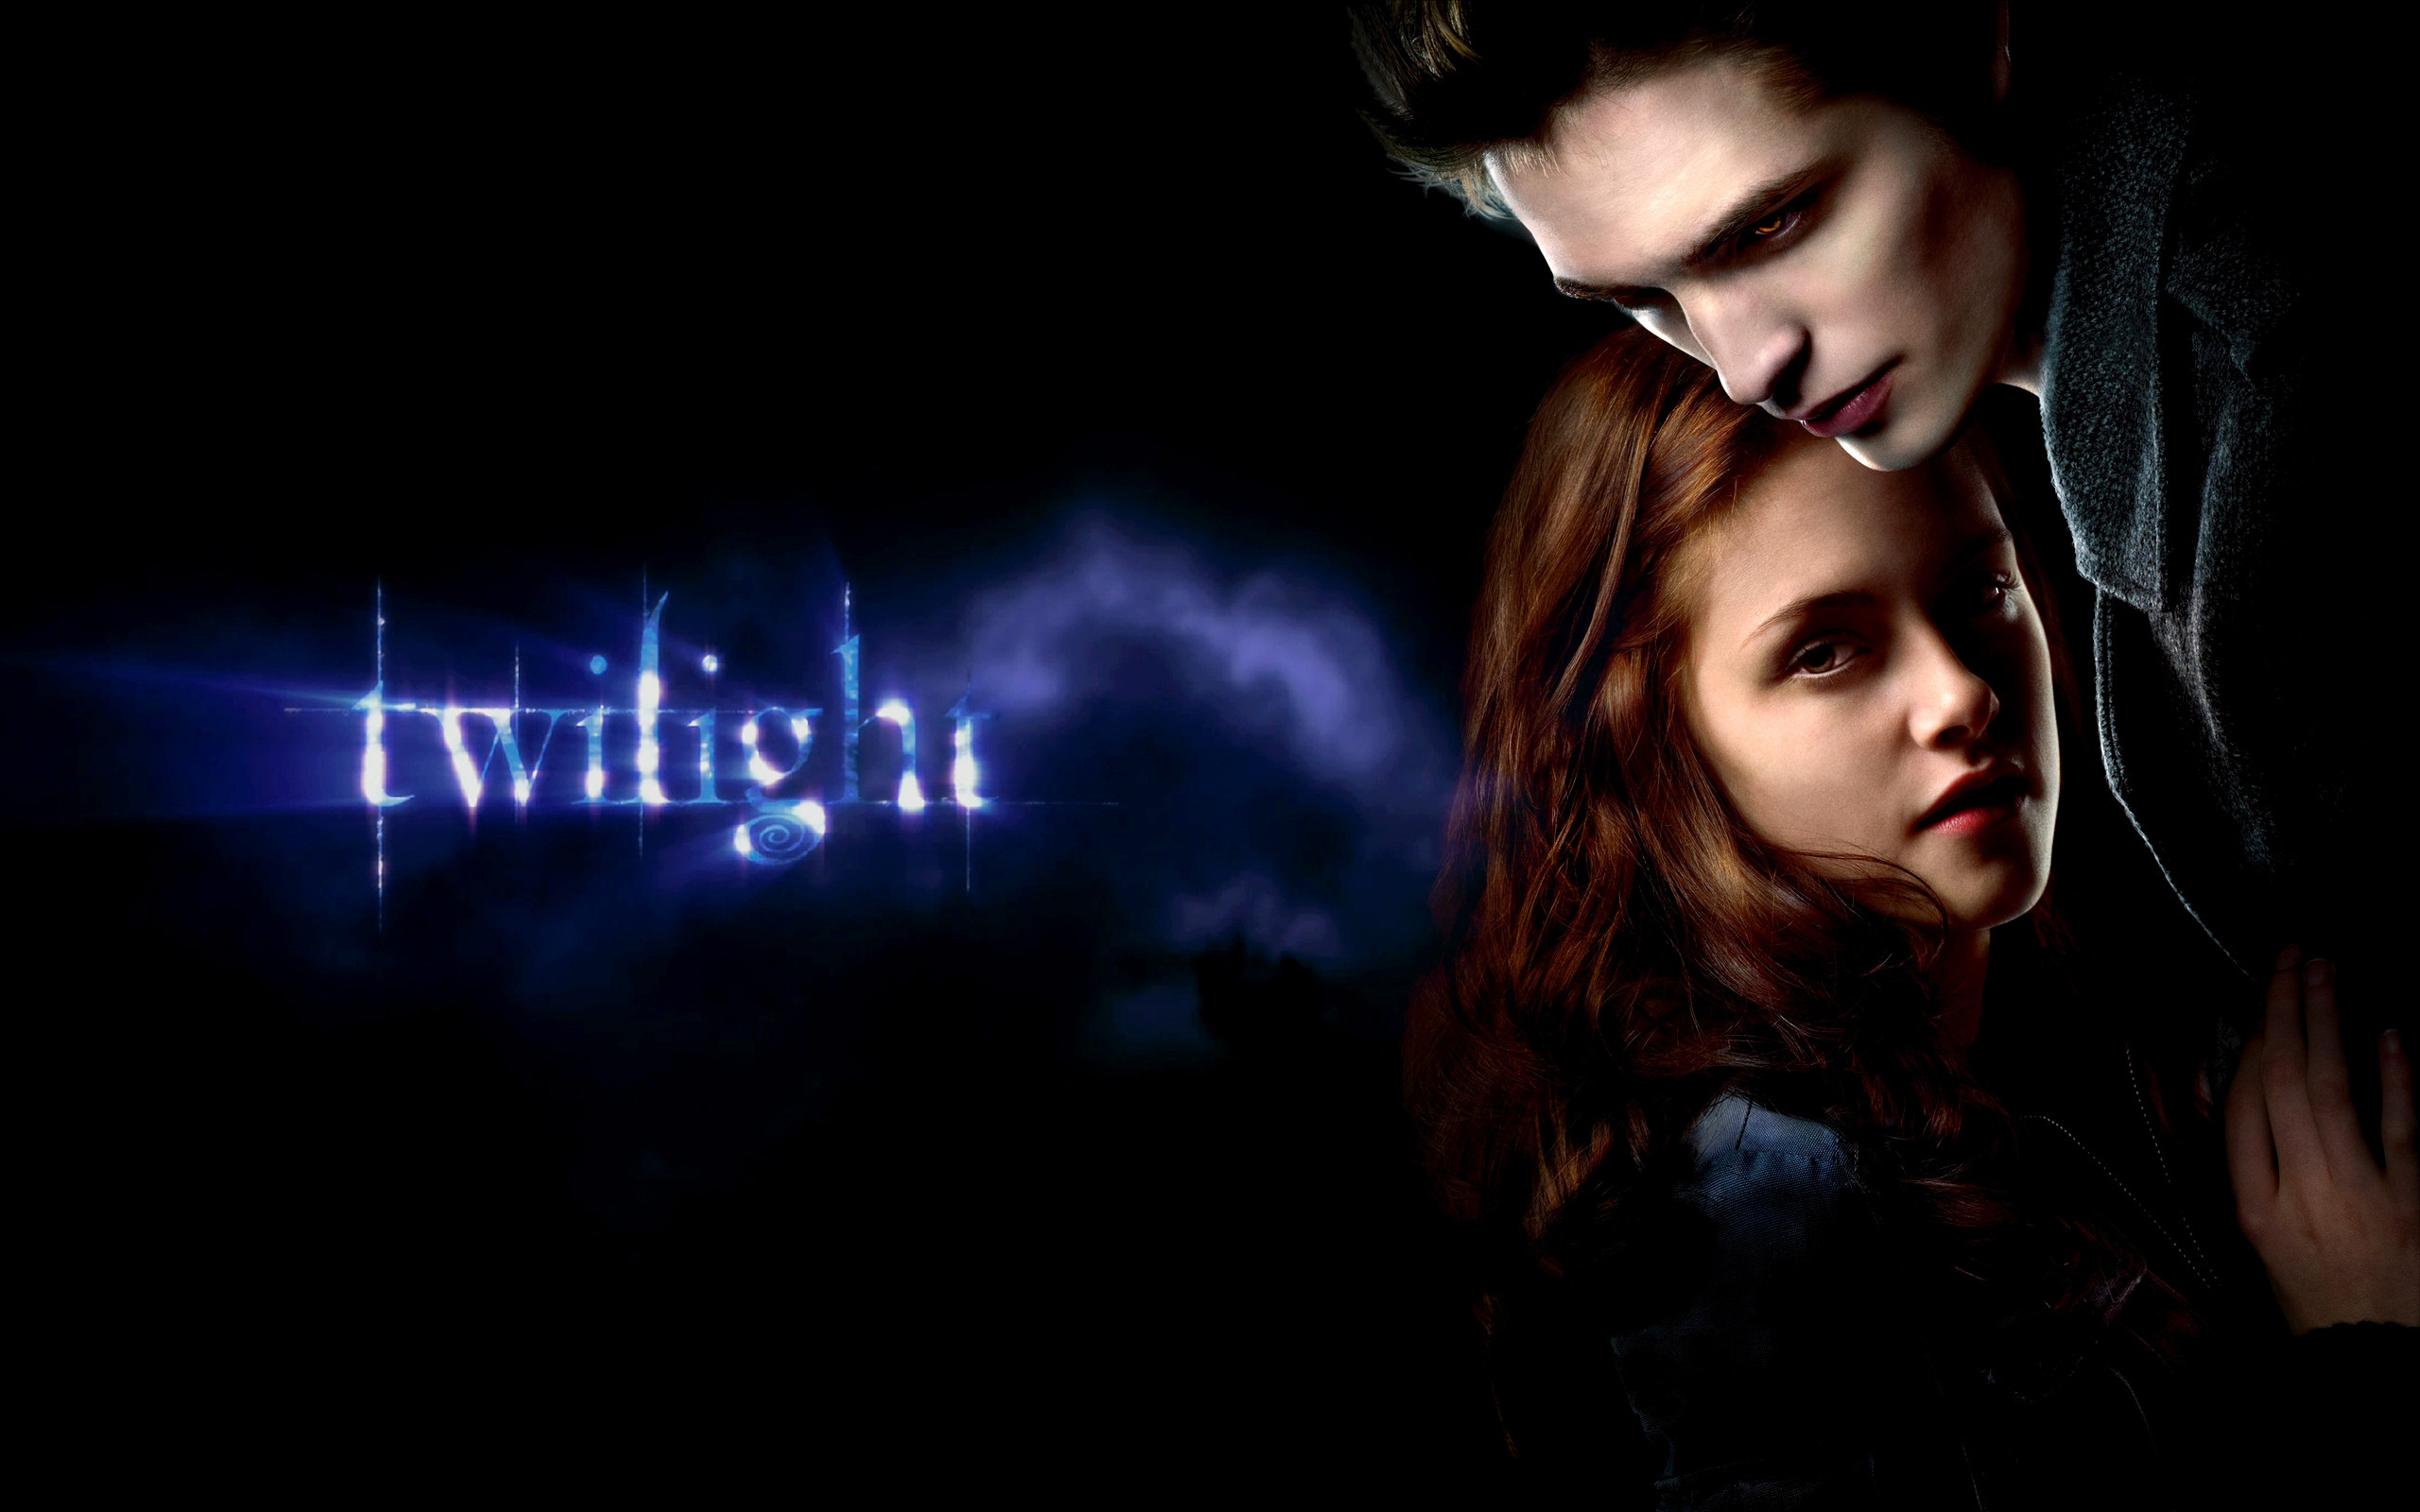 twilight wallpapers (71+ images)